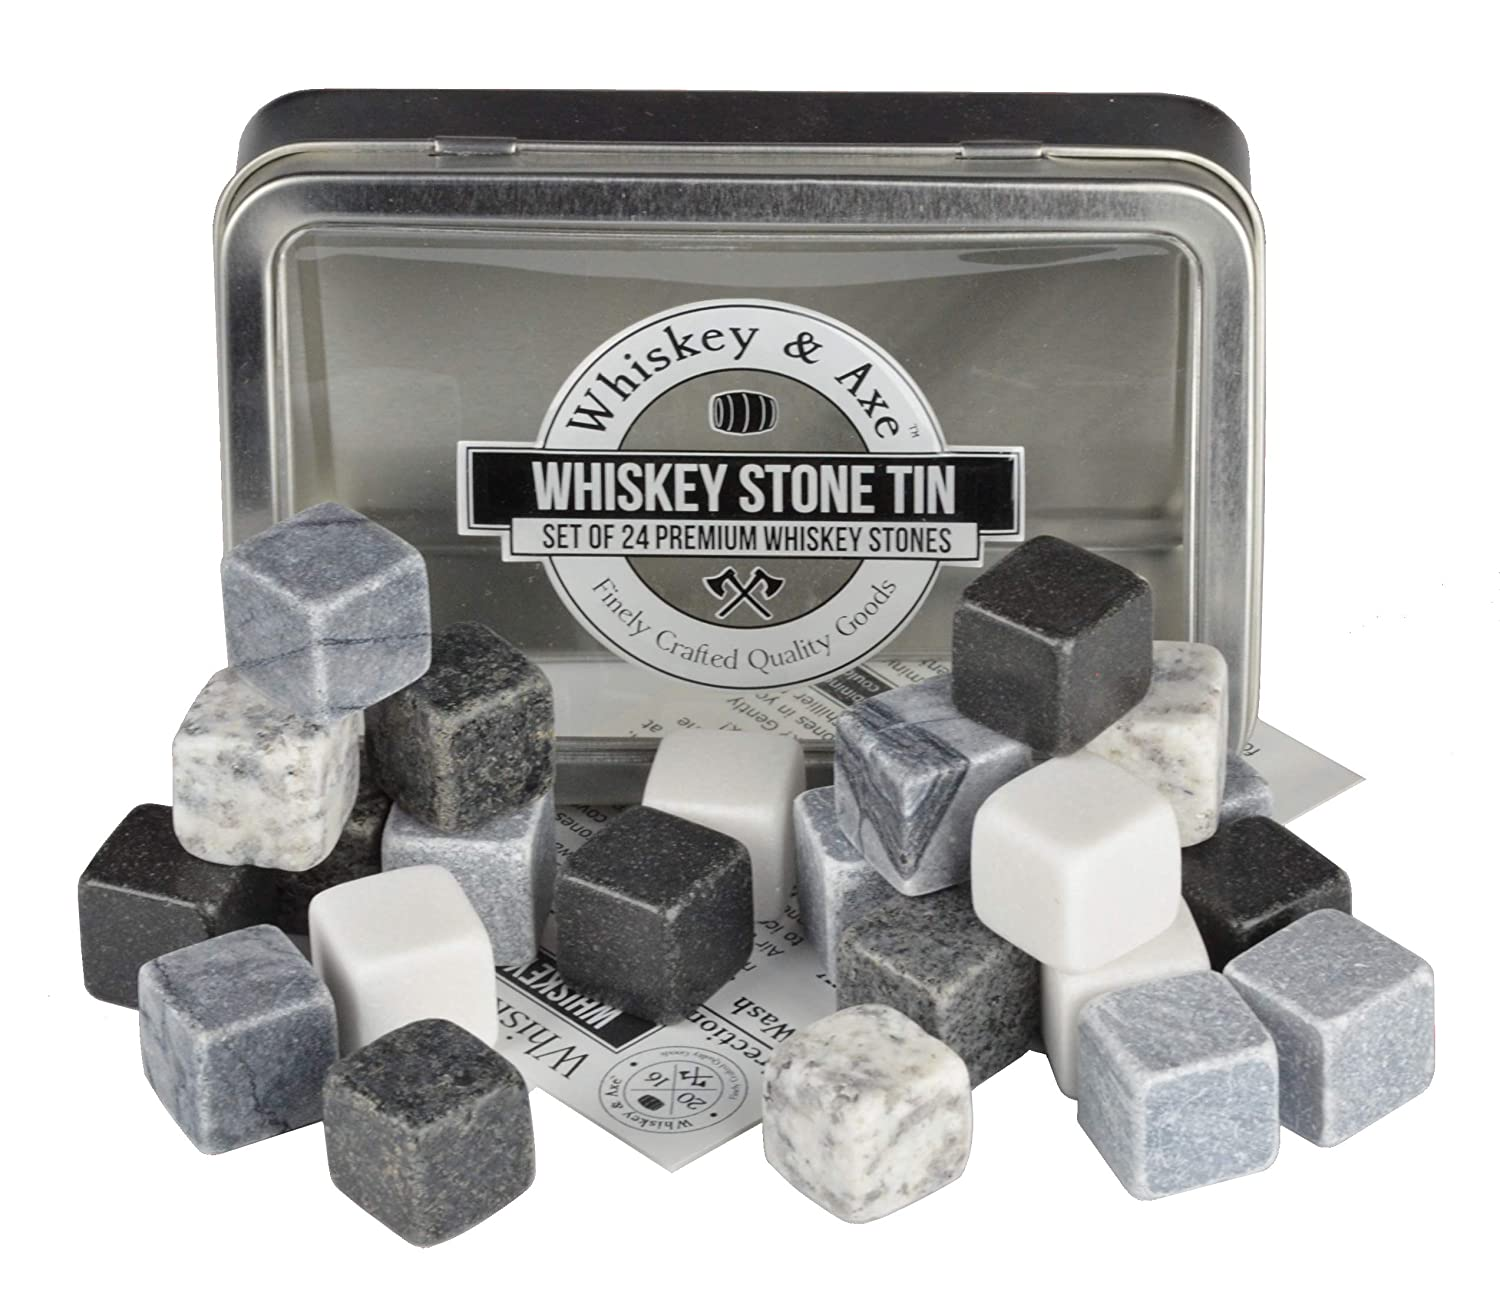 Whiskey & Axe - Premium Set of 24 Whiskey Stones with Storage Tin - Gray Scale Edition IVWA00100010